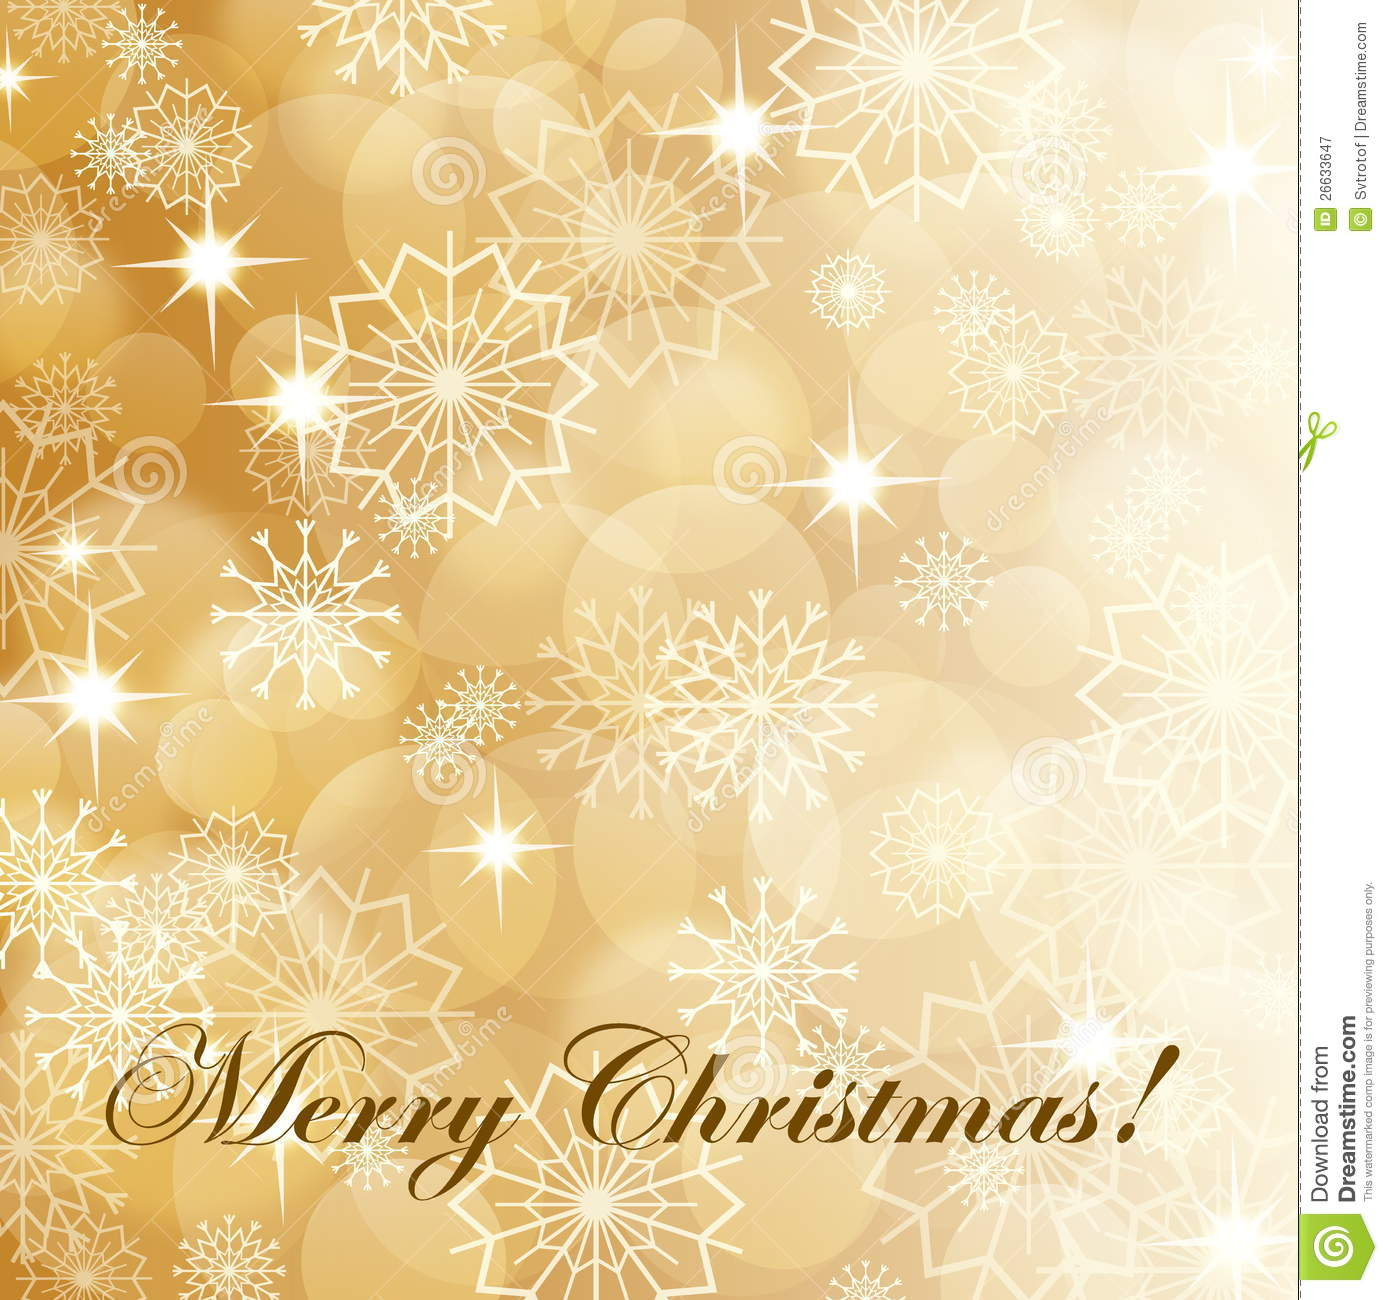 Christmas Background Images Gold.Gold Christmas Background Stock Vector Illustration Of